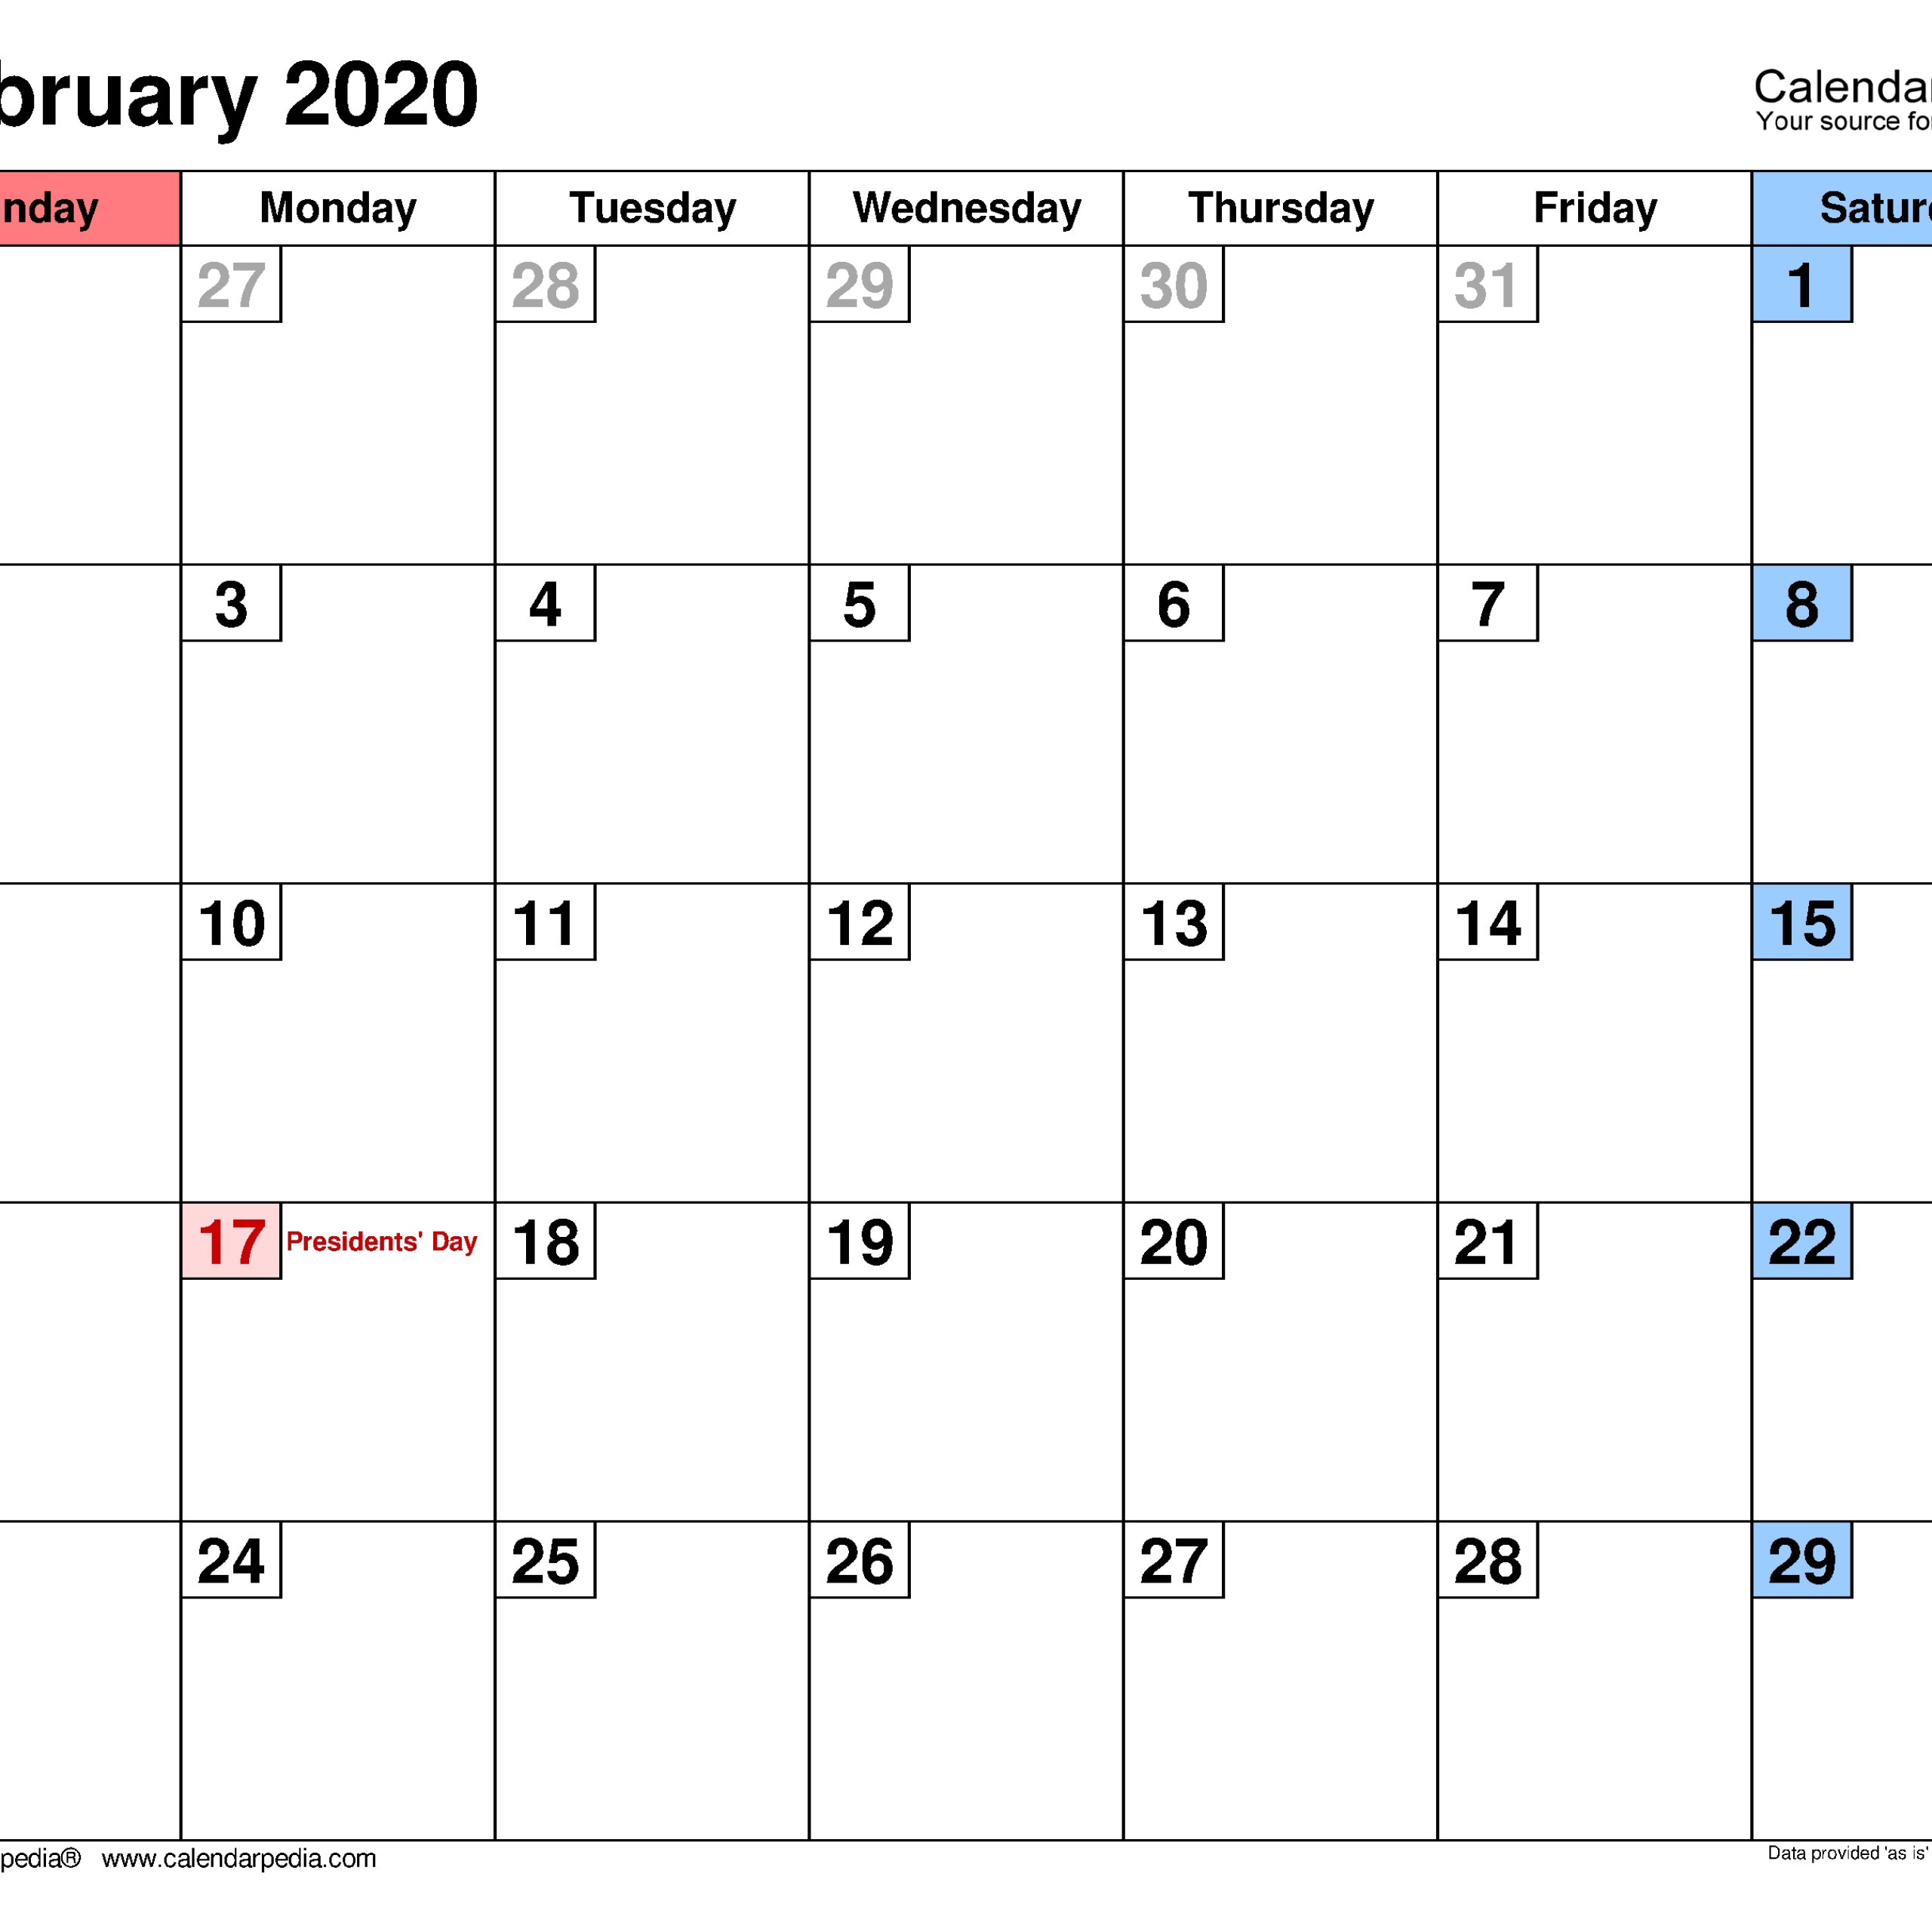 February 2020 – Calendar Templates For Word, Excel And Pdf